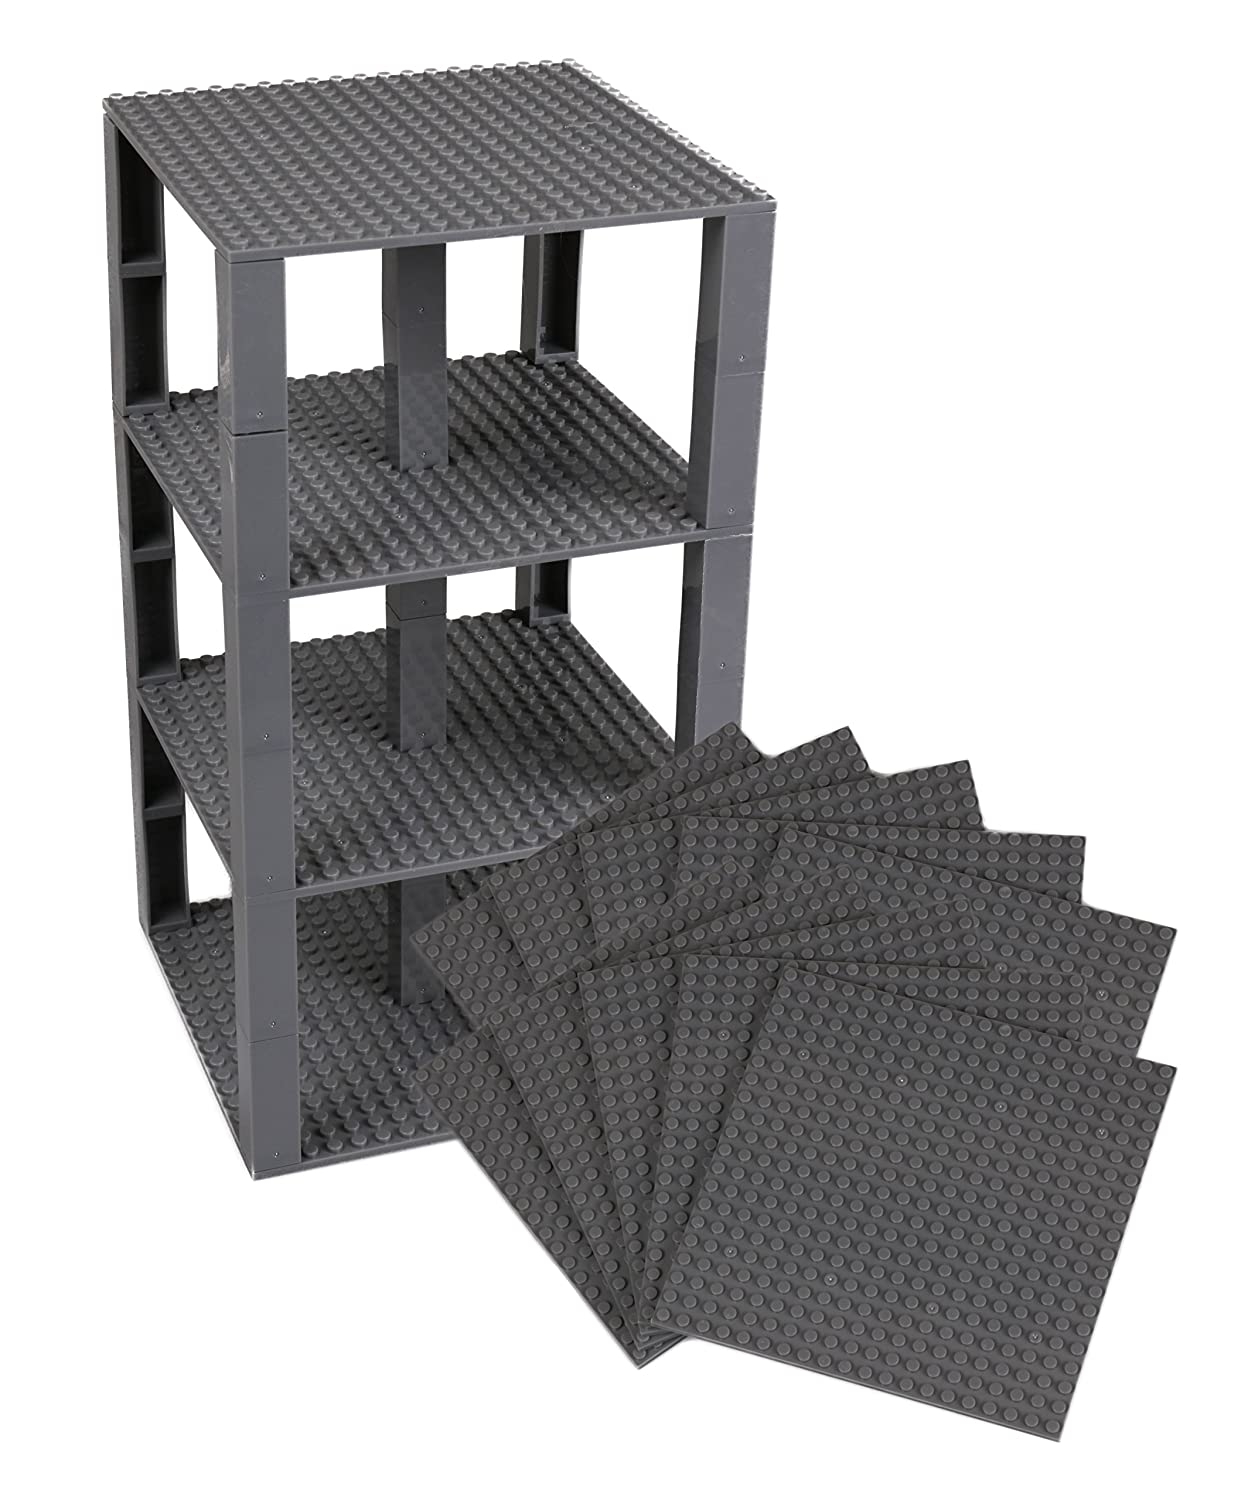 Premium Charcoal Gray Stackable Base Plates - 10 Pack 6' x 6' Baseplate Bundle with 80 New and Improved 2x2 Stackers - Compatible with All Major Brands - Tower Construction Strictly Briks